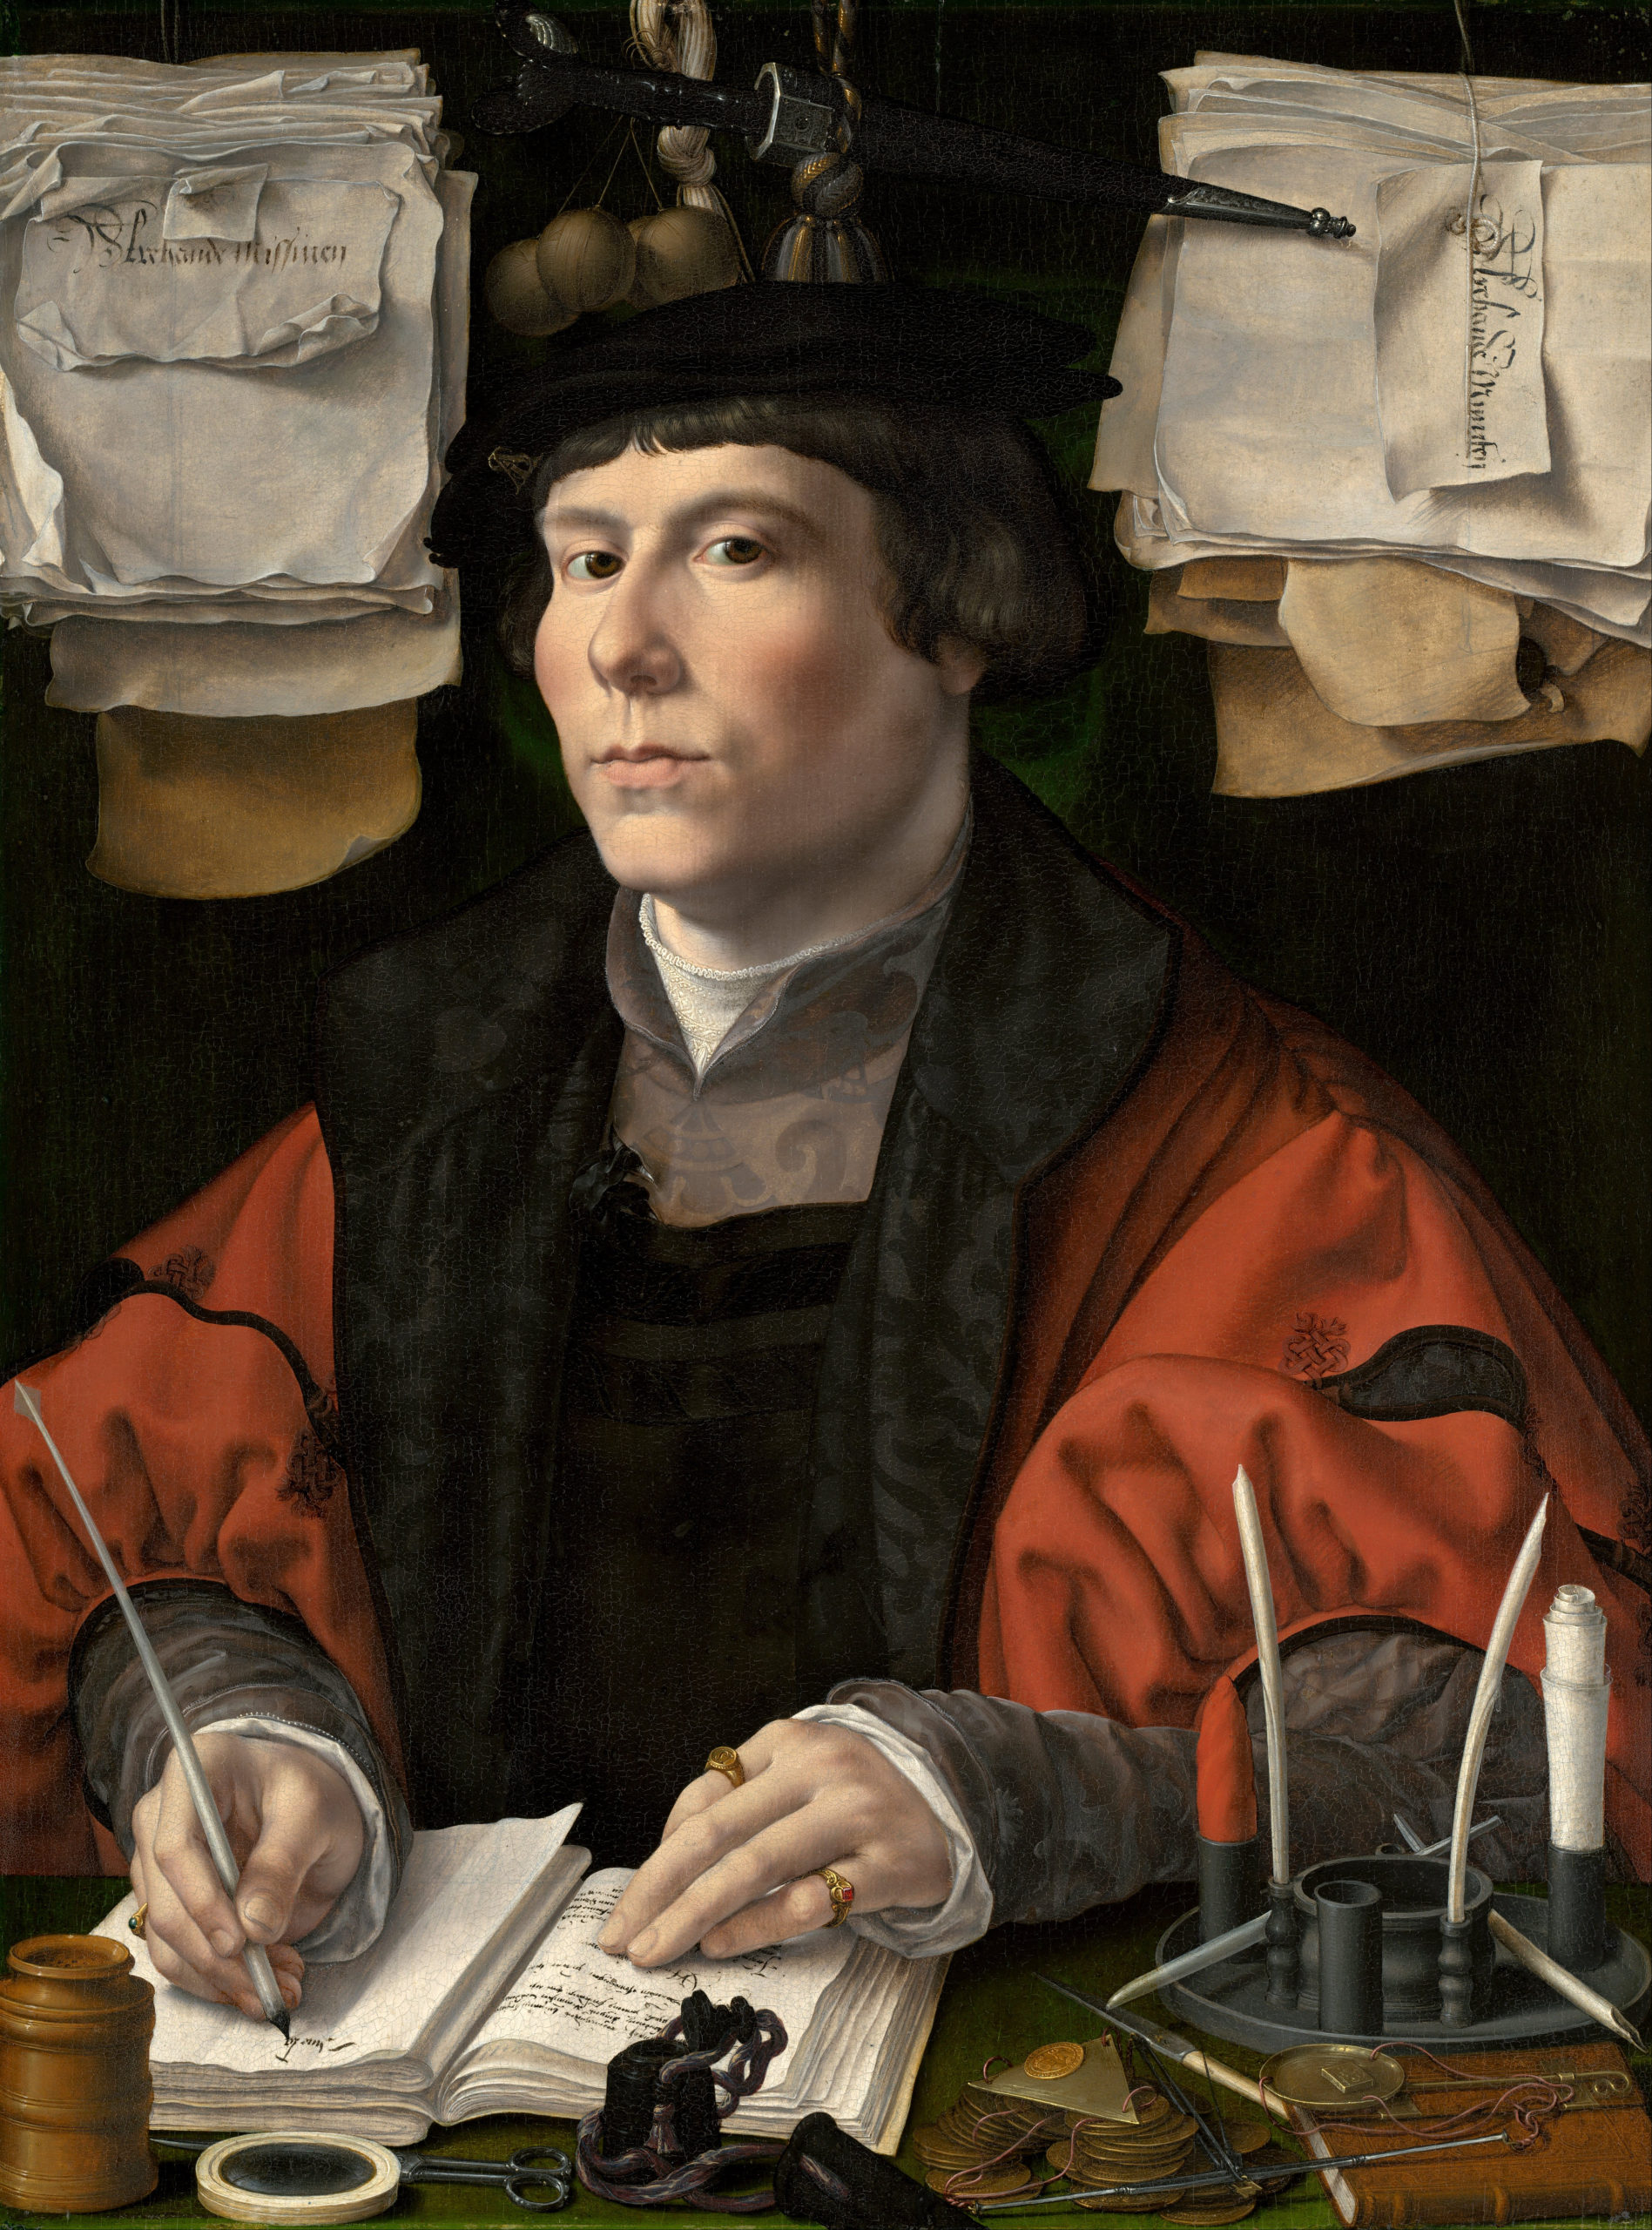 Jan Gossaert, Portrait of a Merchant, c. 1530, oil on panel, 25 x 18 3/4 inches (National Gallery of Art, Washington)